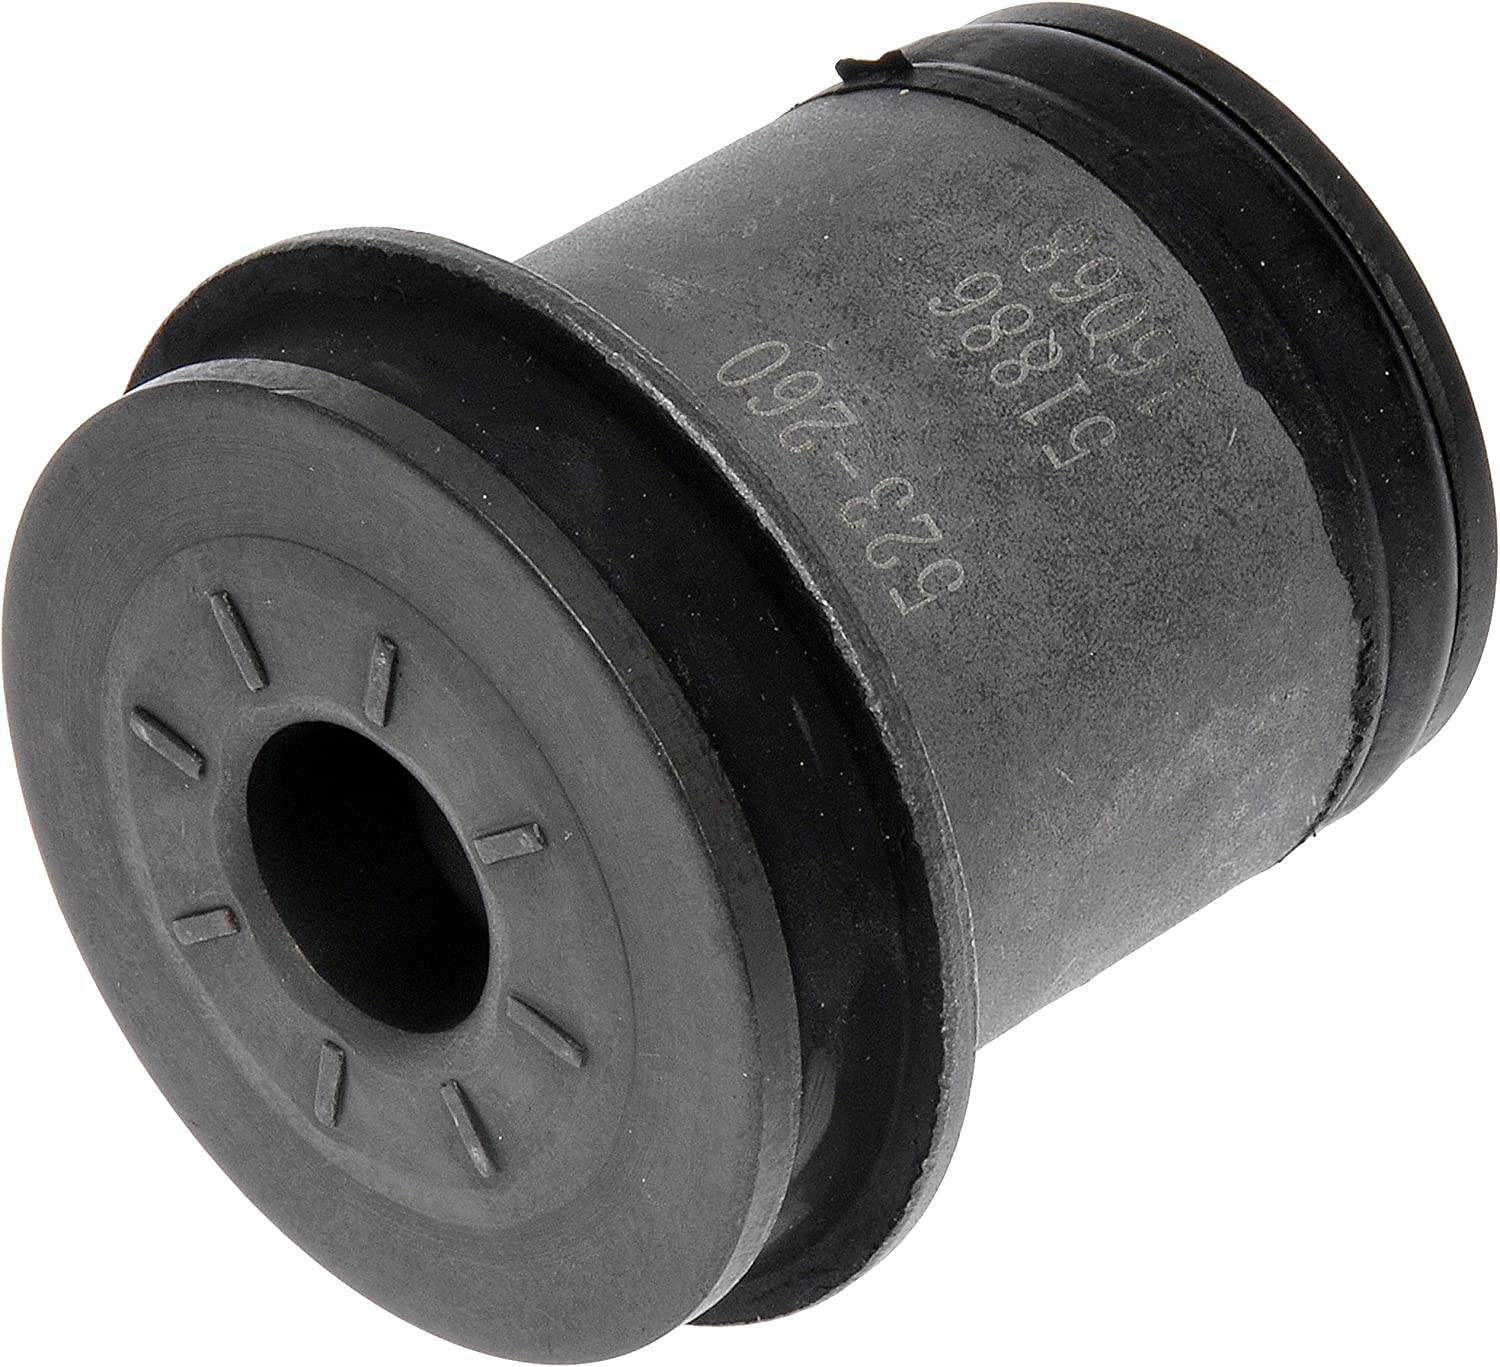 Dorman 523-260 Front Lower Forward Suspension Control Arm Bushing for Select Ford Models